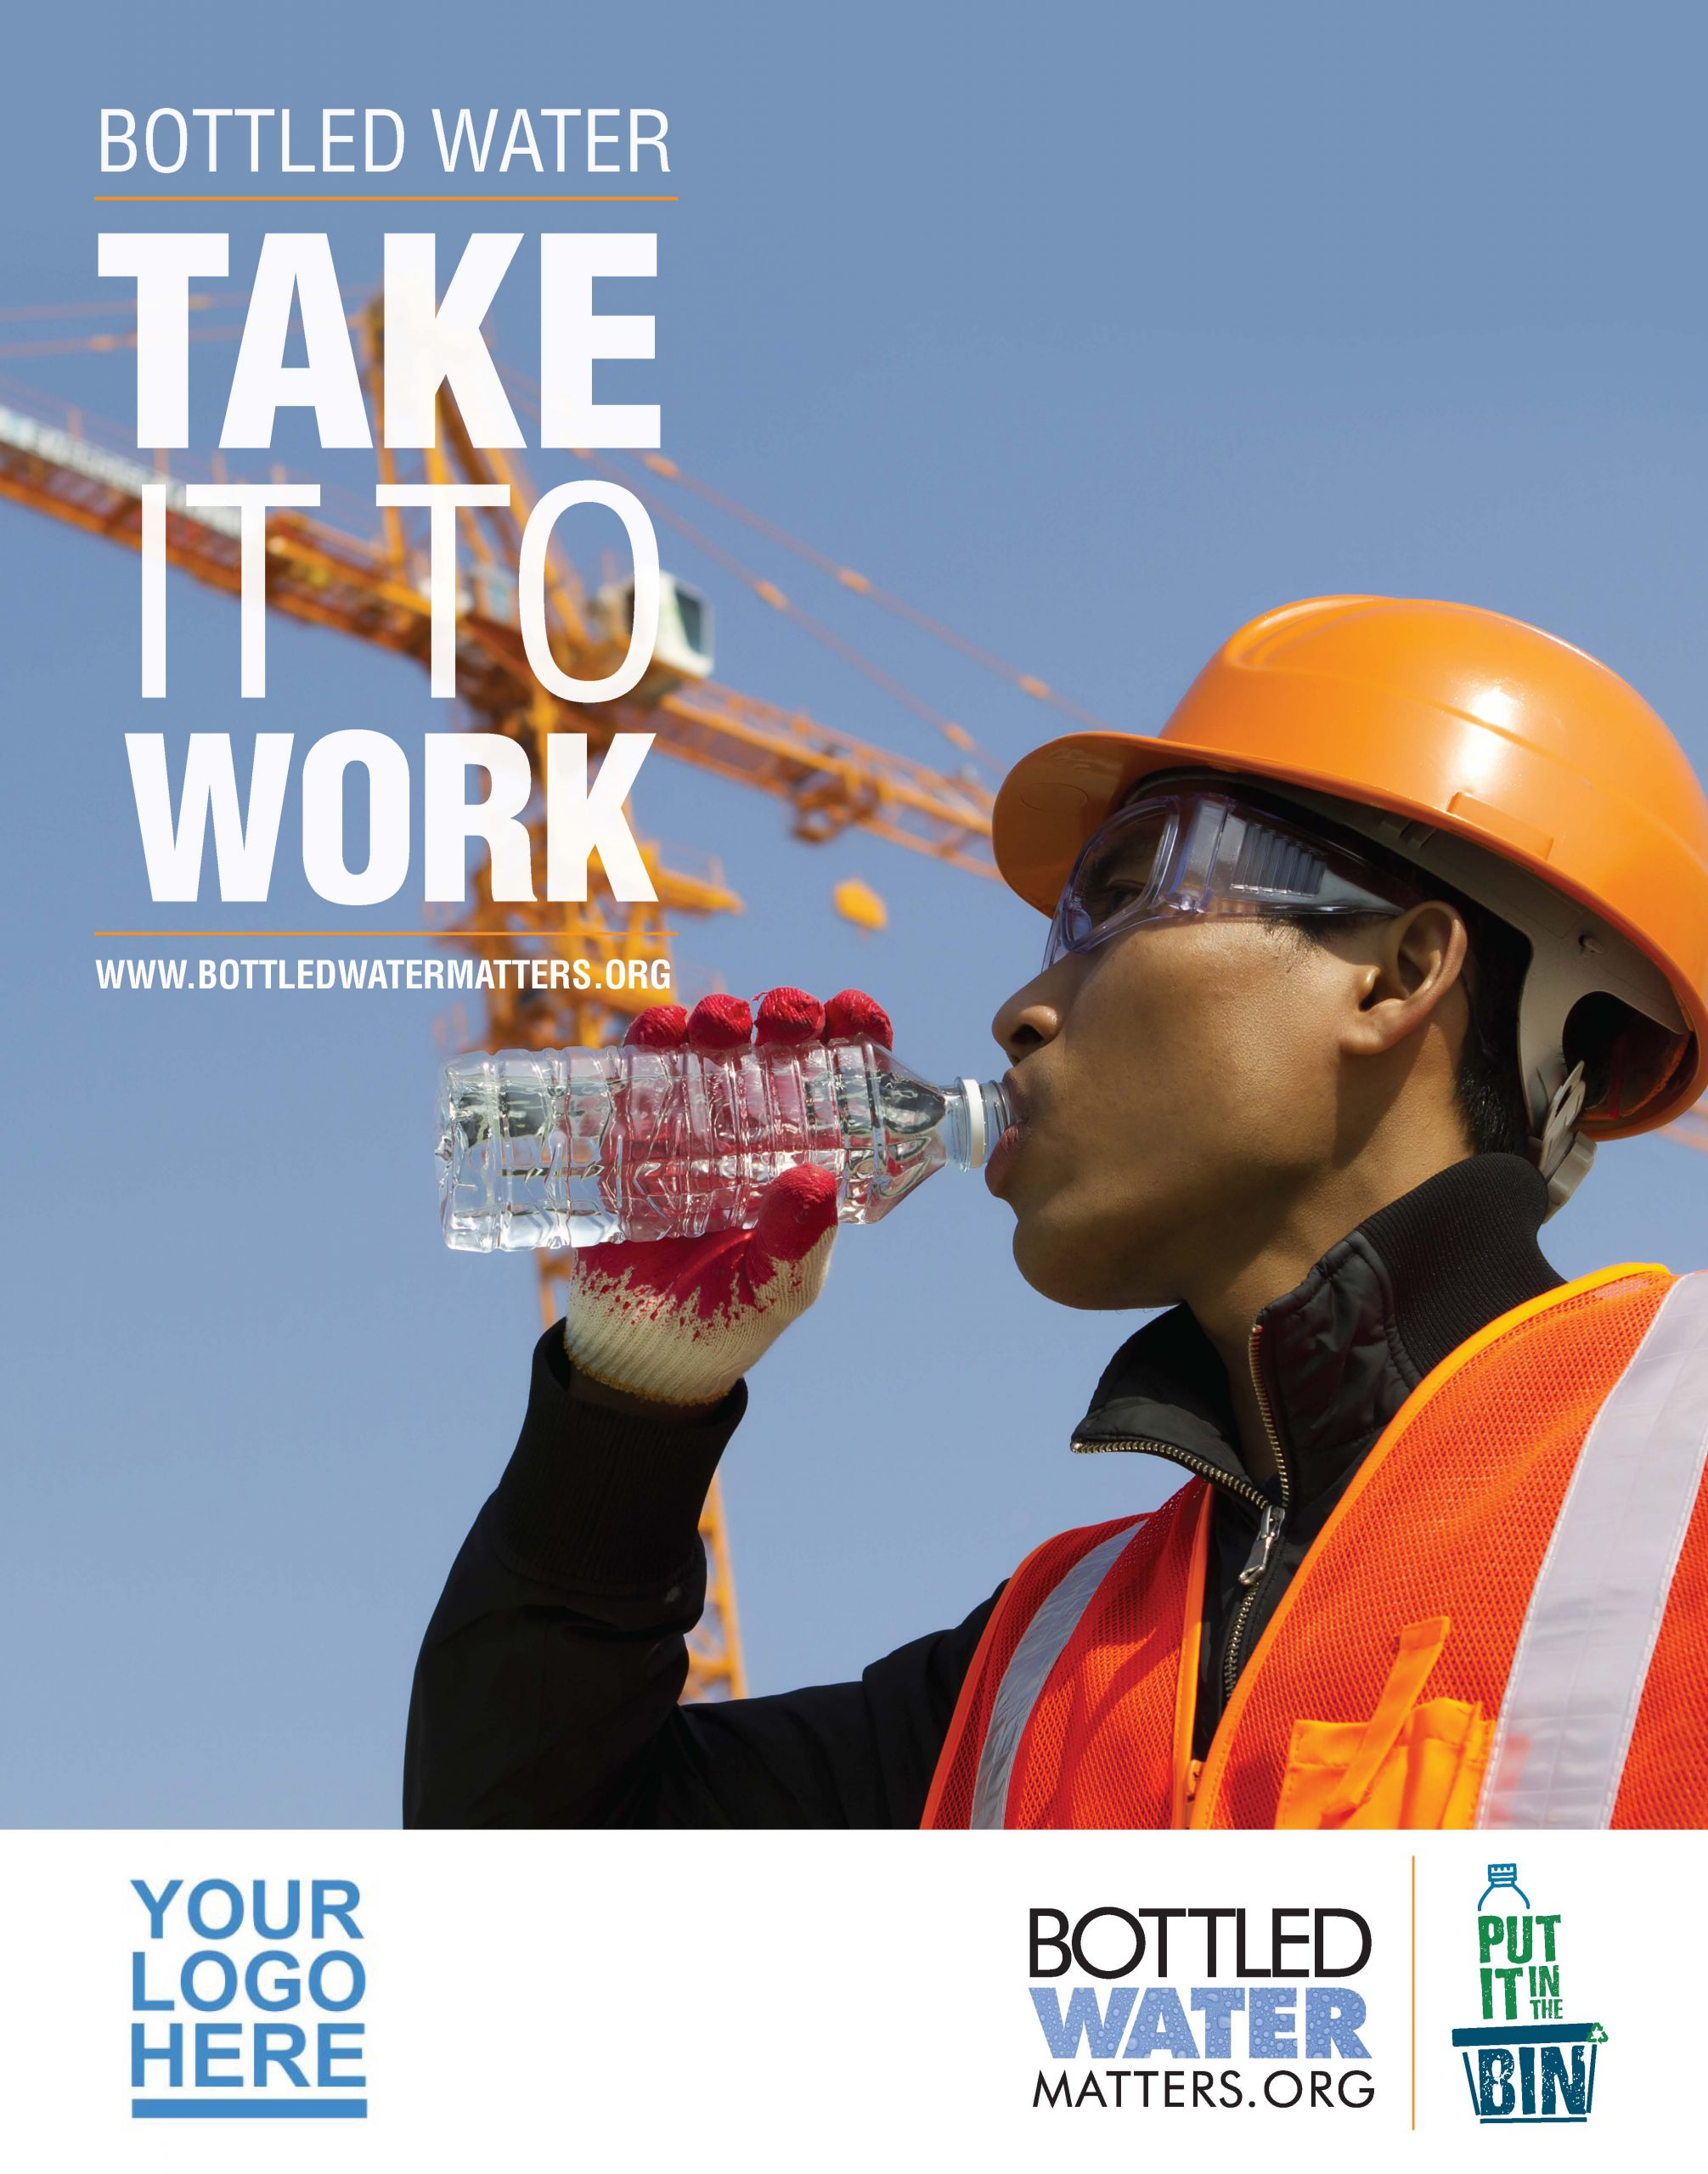 TakeItToWork Hardhat Member Scaled, Bottled Water | IBWA | Bottled Water